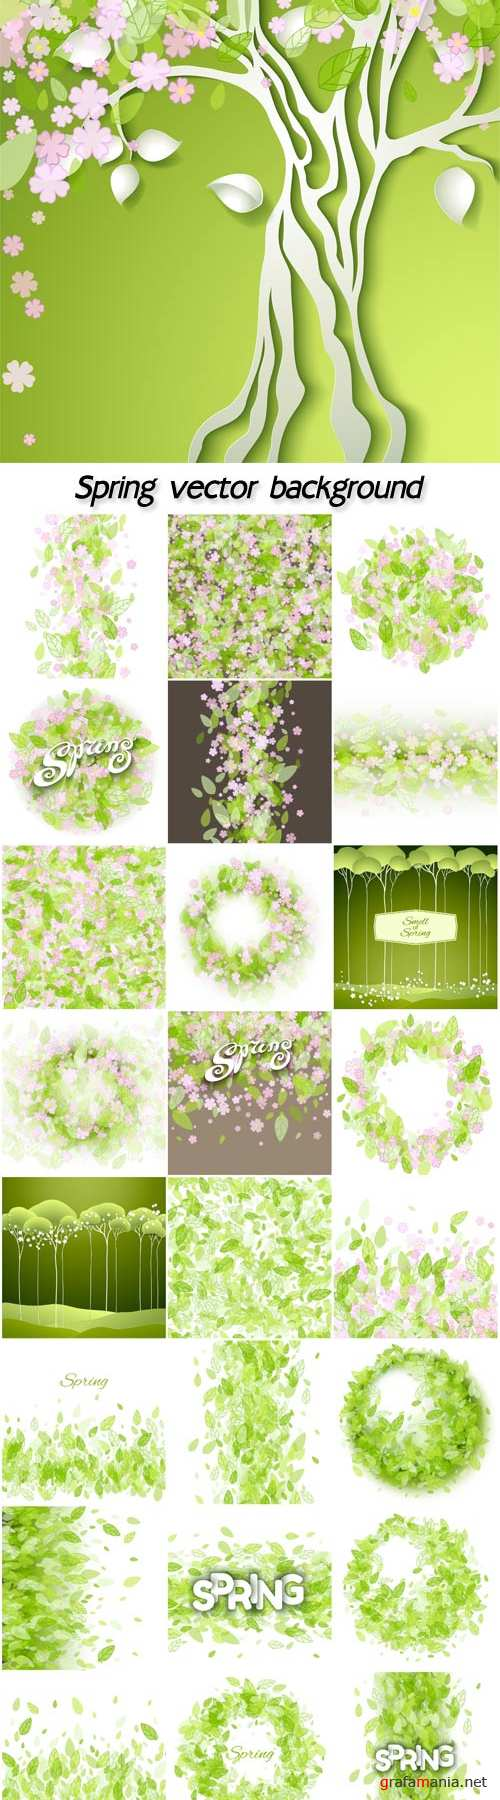 Spring vector background with green leaves and flowers